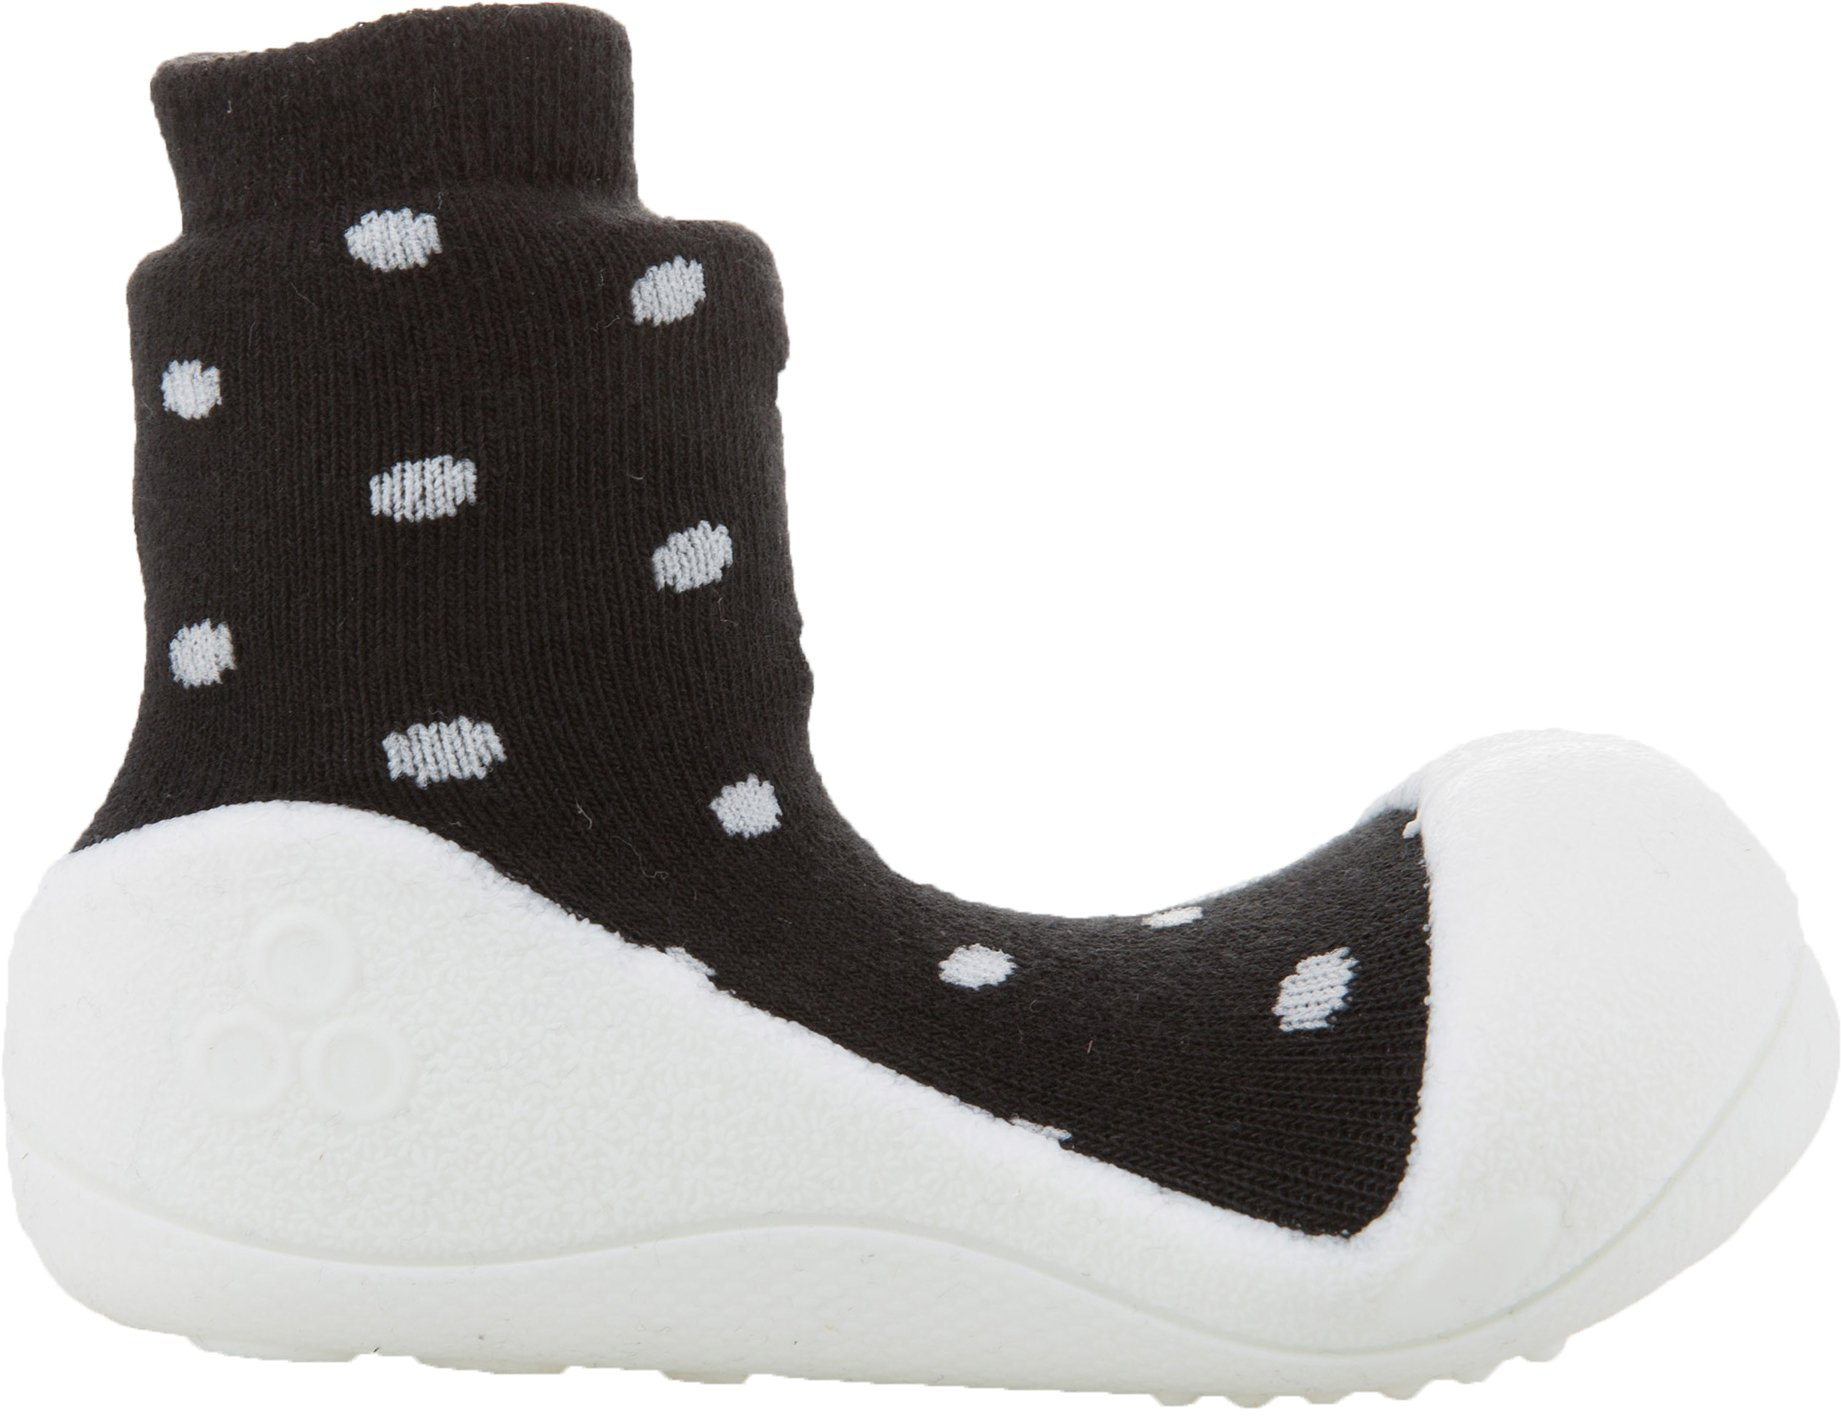 Attipas Baby First Walker Shoes (Medium, Urban Dot) by Attipas (Image #2)